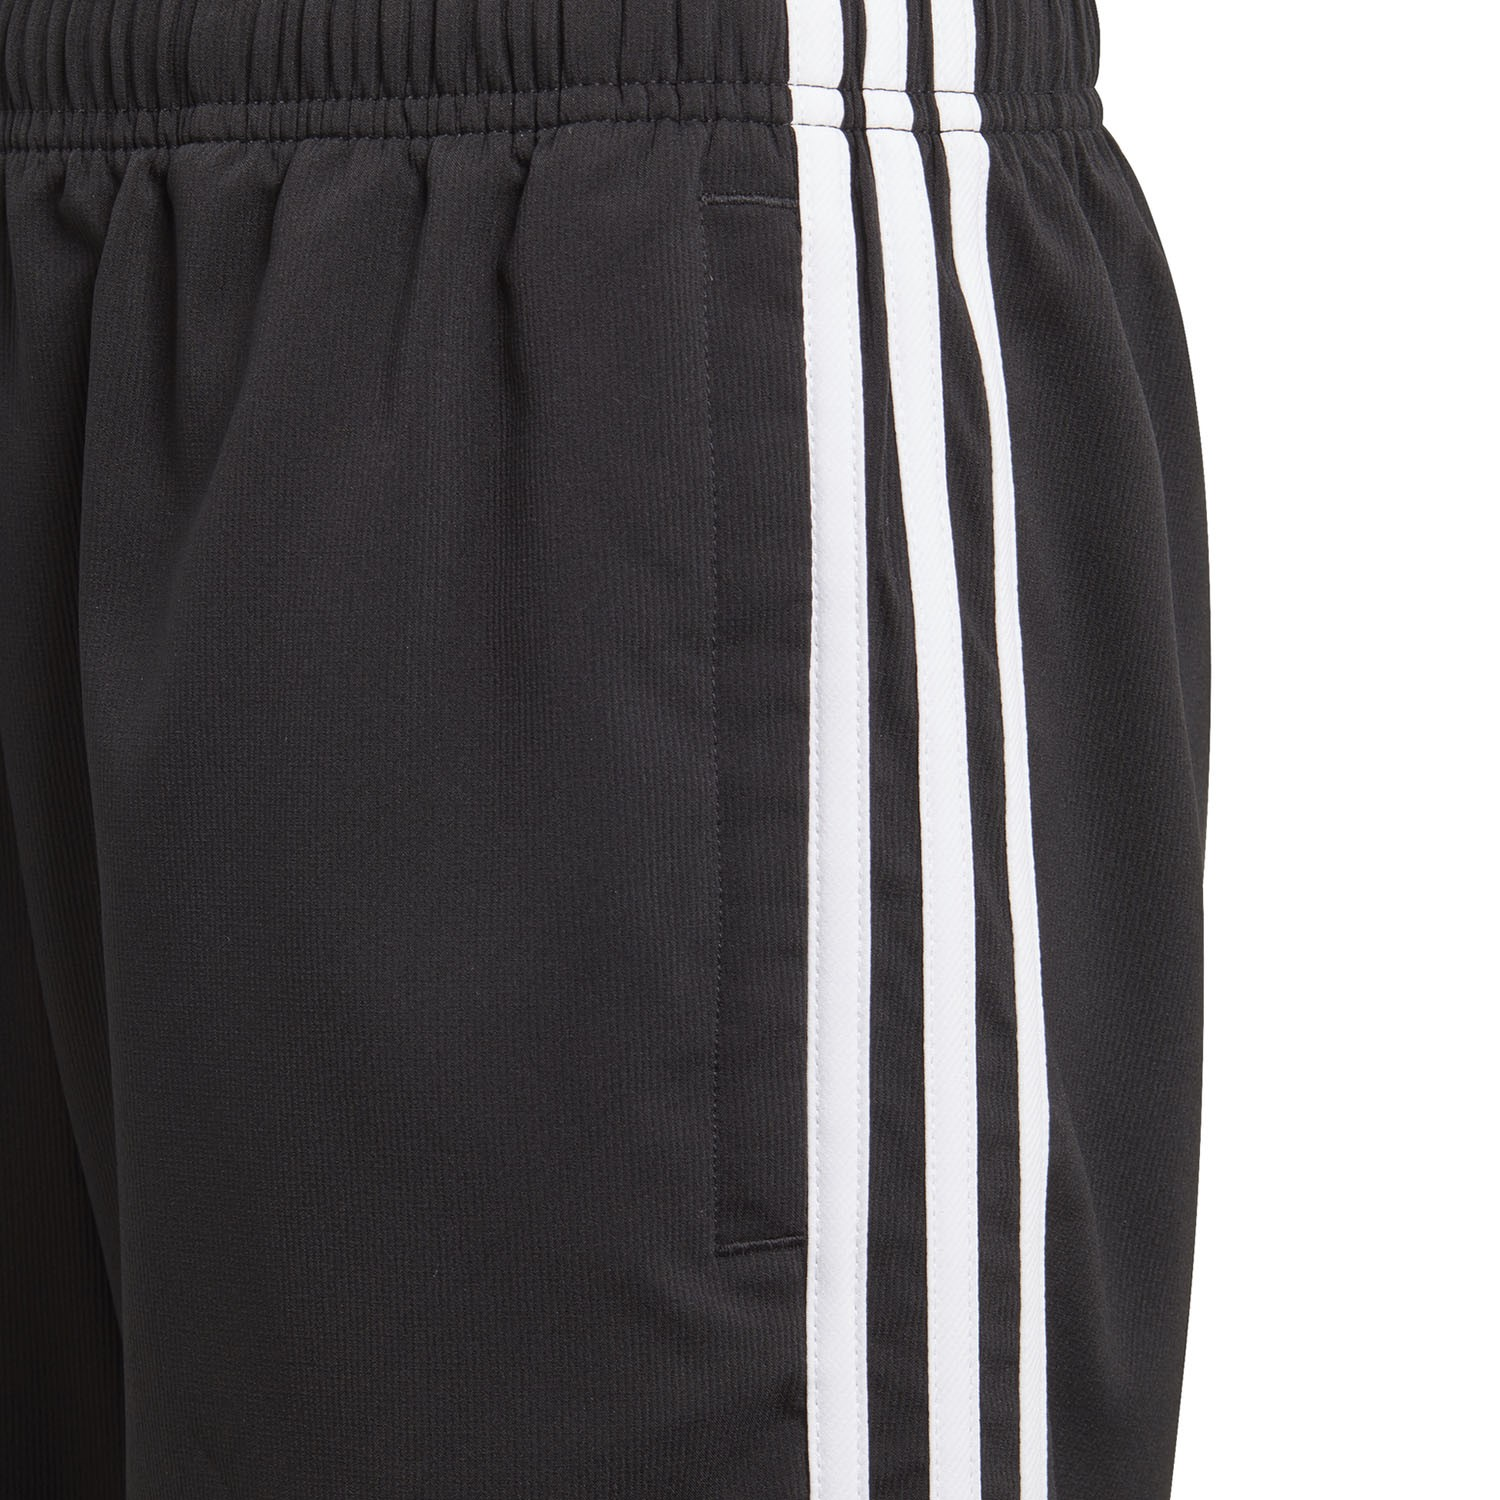 23b57b752b46f9 Adidas Essentials 3-Stripe Woven Kids Boys Training Shorts - Black White